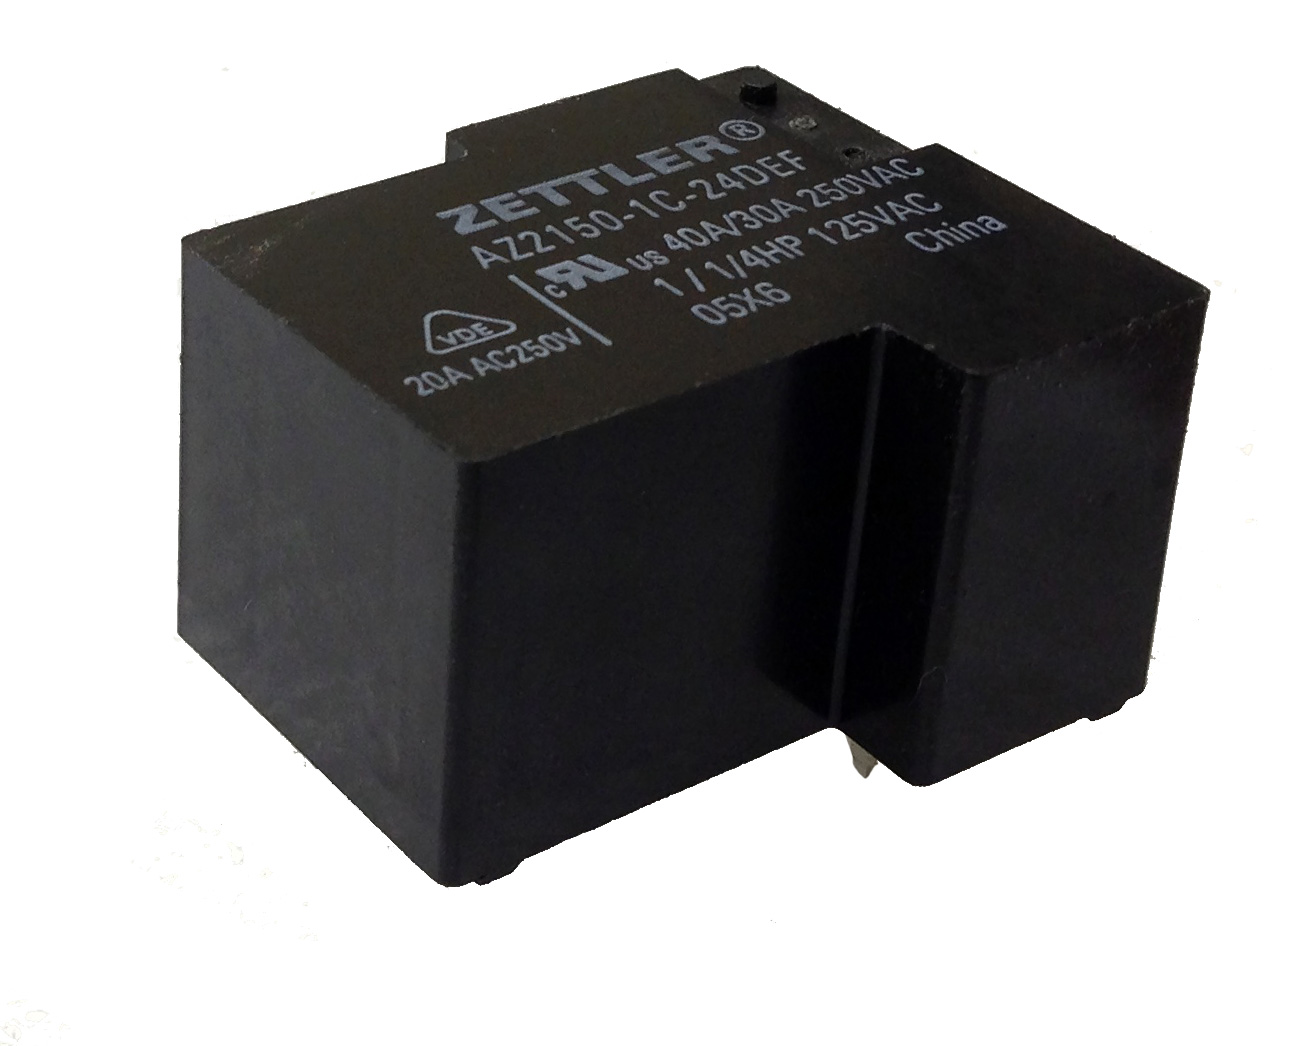 Press Releases American Zettler Inc Spdt 12v Sugar Cube Relay Lighting Remains A Bright Spot With New Ballast Ratings On Relays